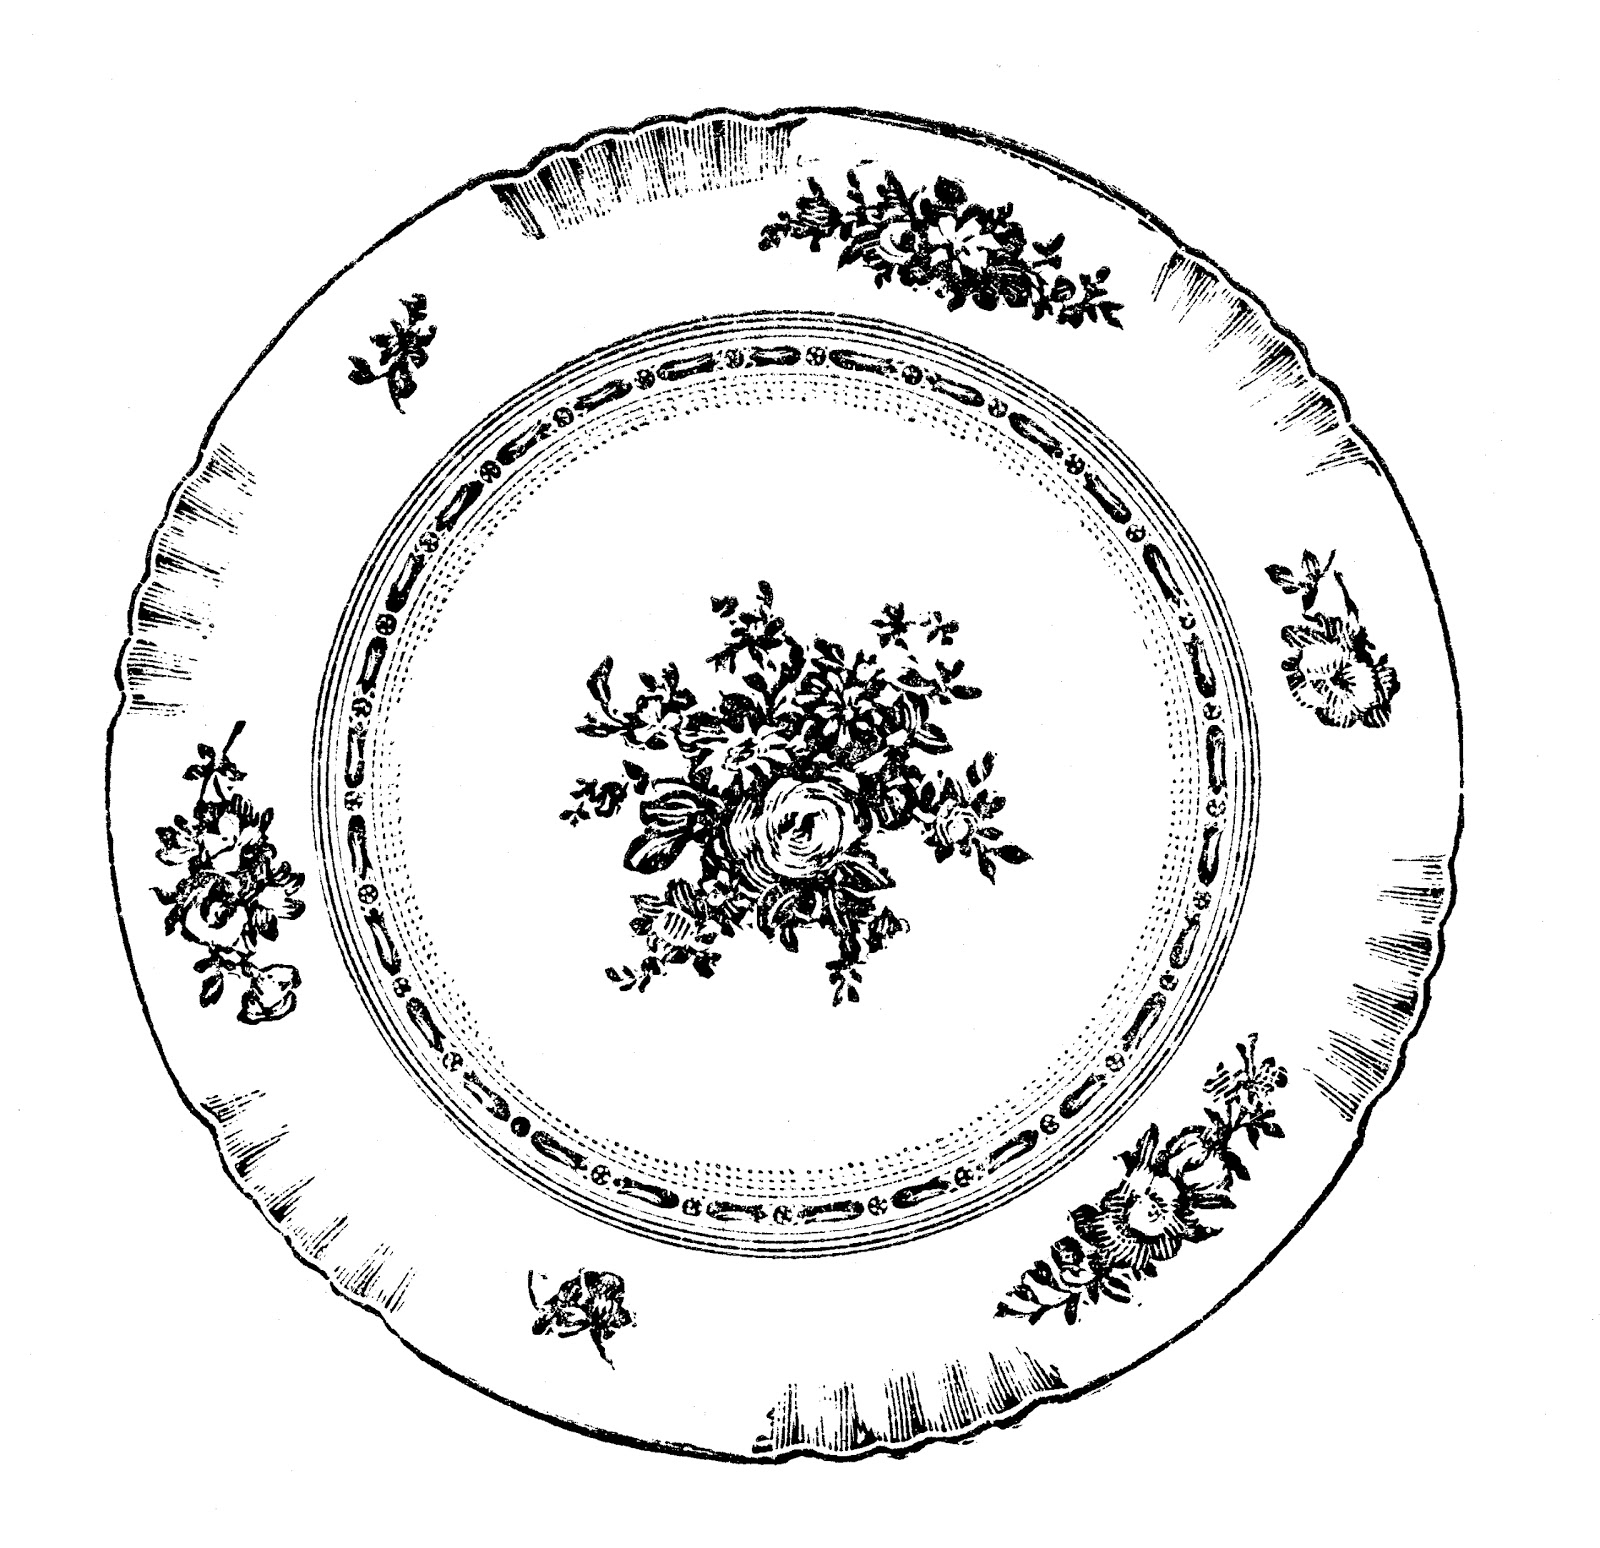 1000+ images about Plate on Pinterest.